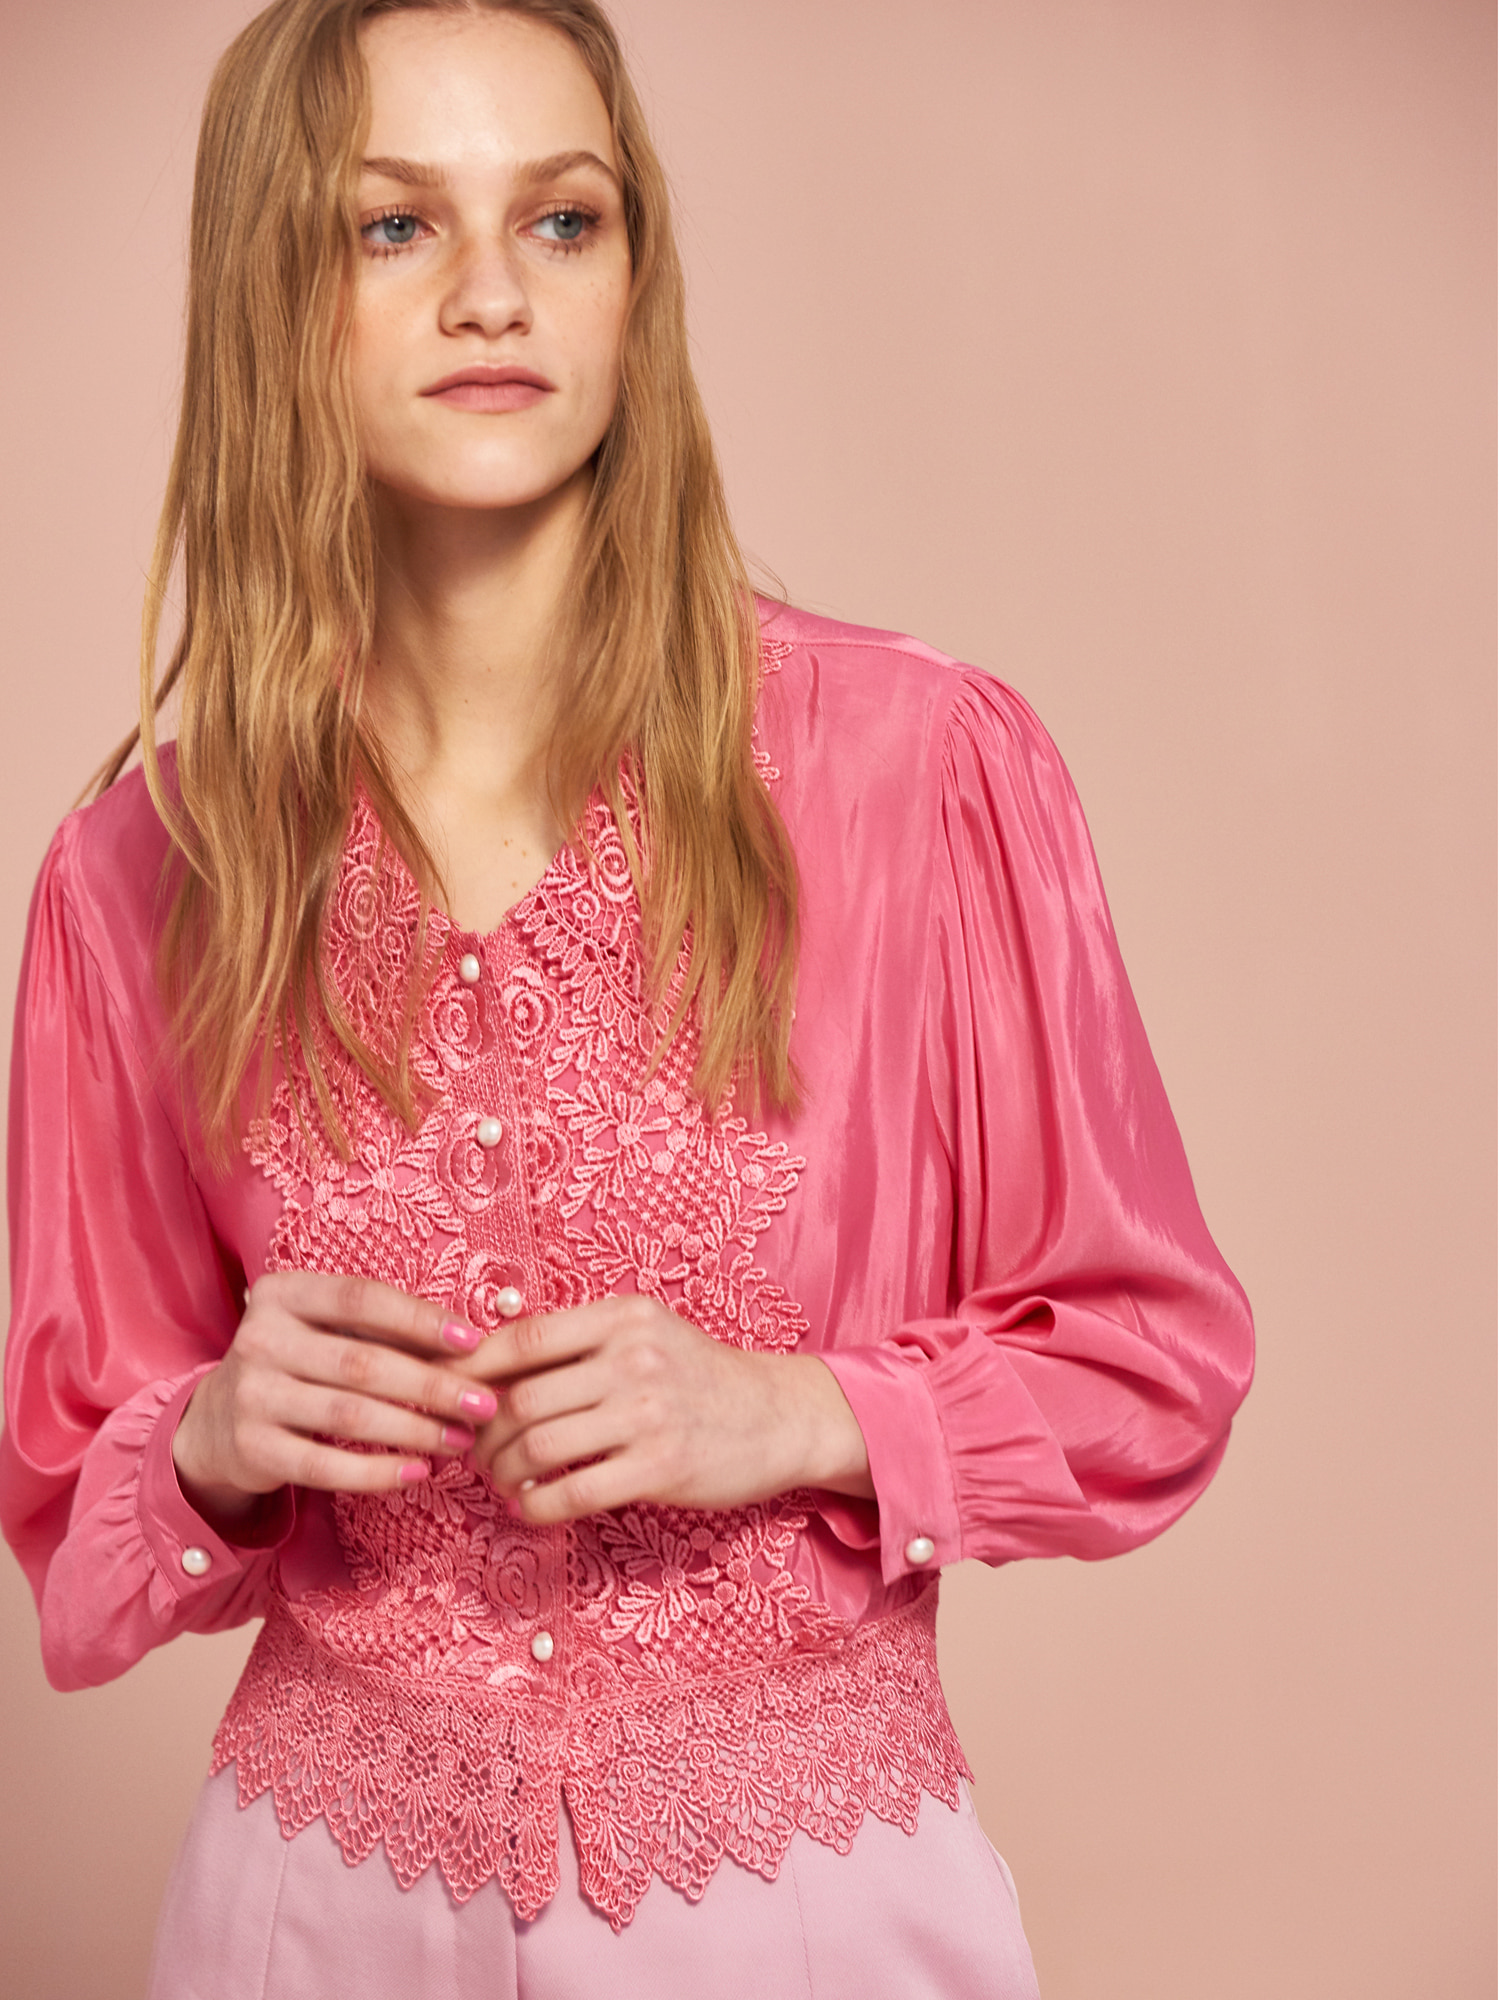 Rose Lace Blouse in Pink